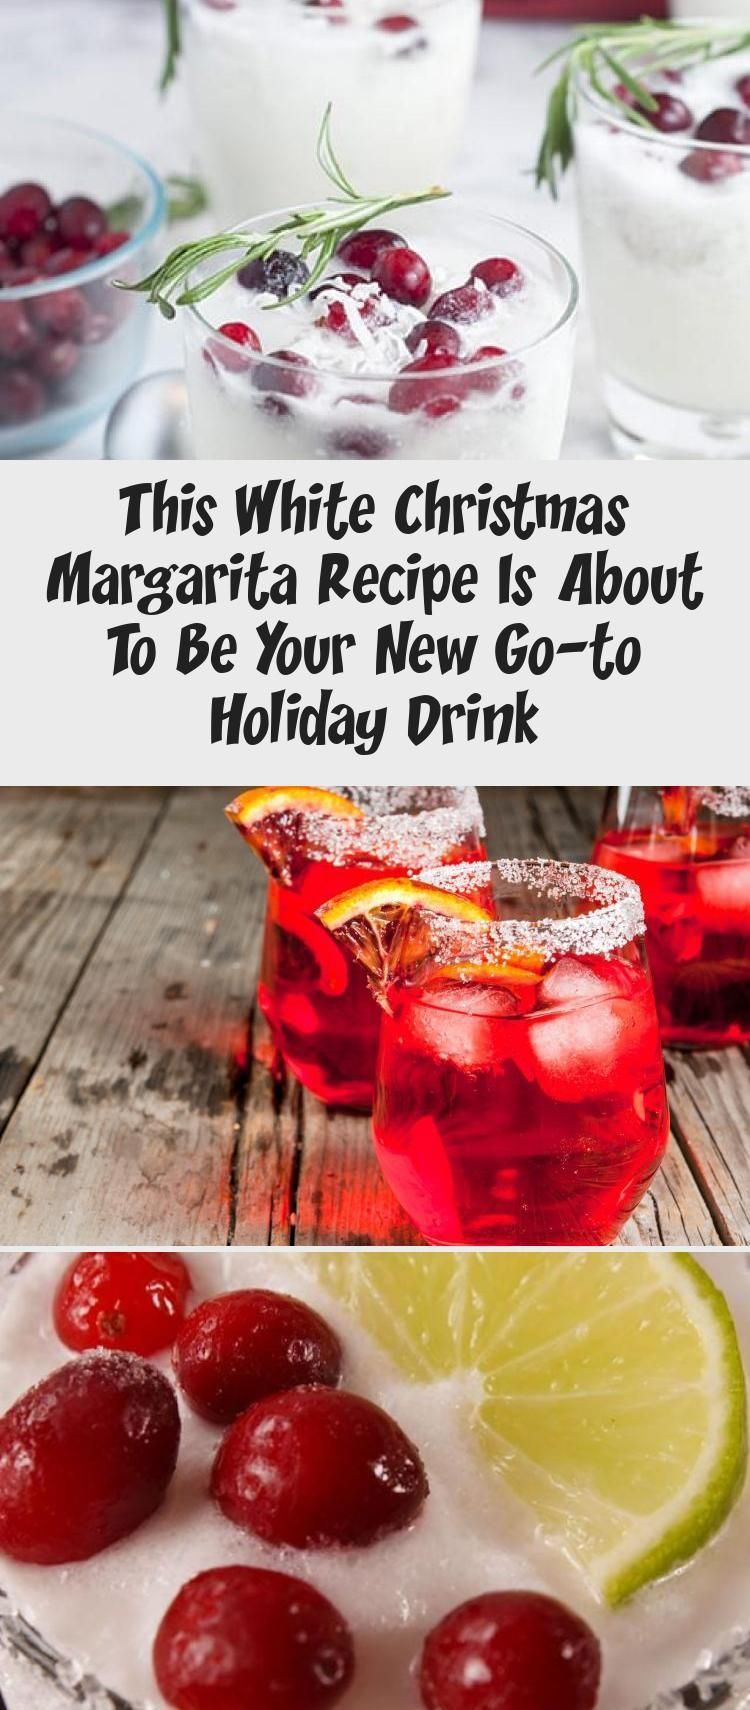 This White Christmas Margarita Recipe Is About To Be Your New Go-to Holiday Drink #christmasmargarita This White Christmas Margarita Recipe Is About To Be Your New Go-To Holiday Drink #BlackAndwhitedrinks #whitedrinksAesthetic #Skinwhitedrinks #whitedrinksPhotography #whitedrinksStarbucks #christmasmargarita This White Christmas Margarita Recipe Is About To Be Your New Go-to Holiday Drink #christmasmargarita This White Christmas Margarita Recipe Is About To Be Your New Go-To Holiday Drink #Black #christmasmargarita